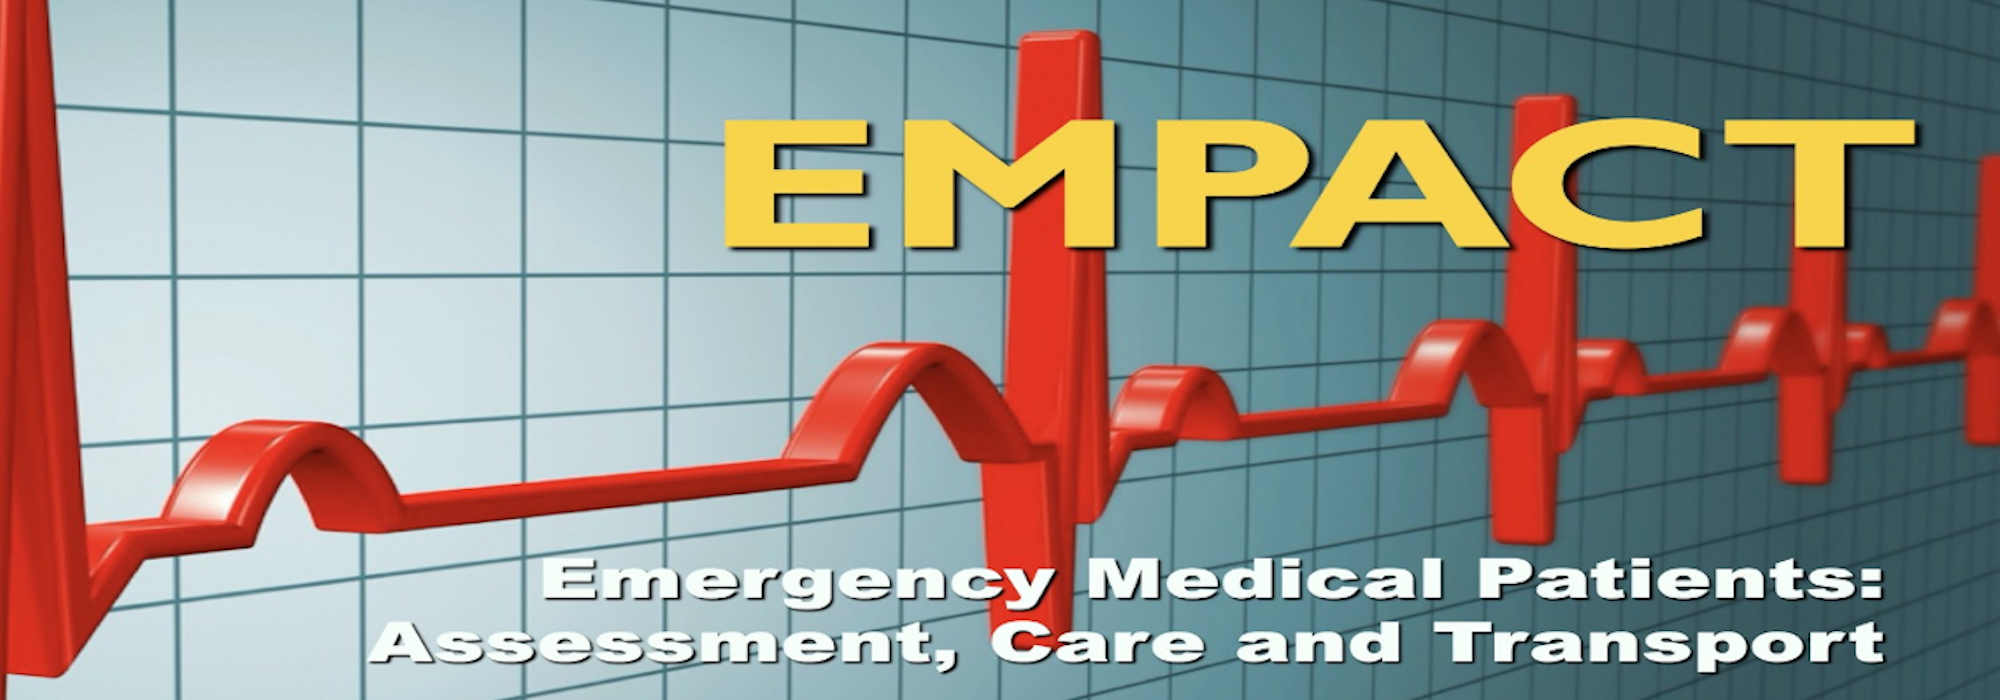 Neu! EMPACT – Emergency Patient: Assessment, Care & Transport